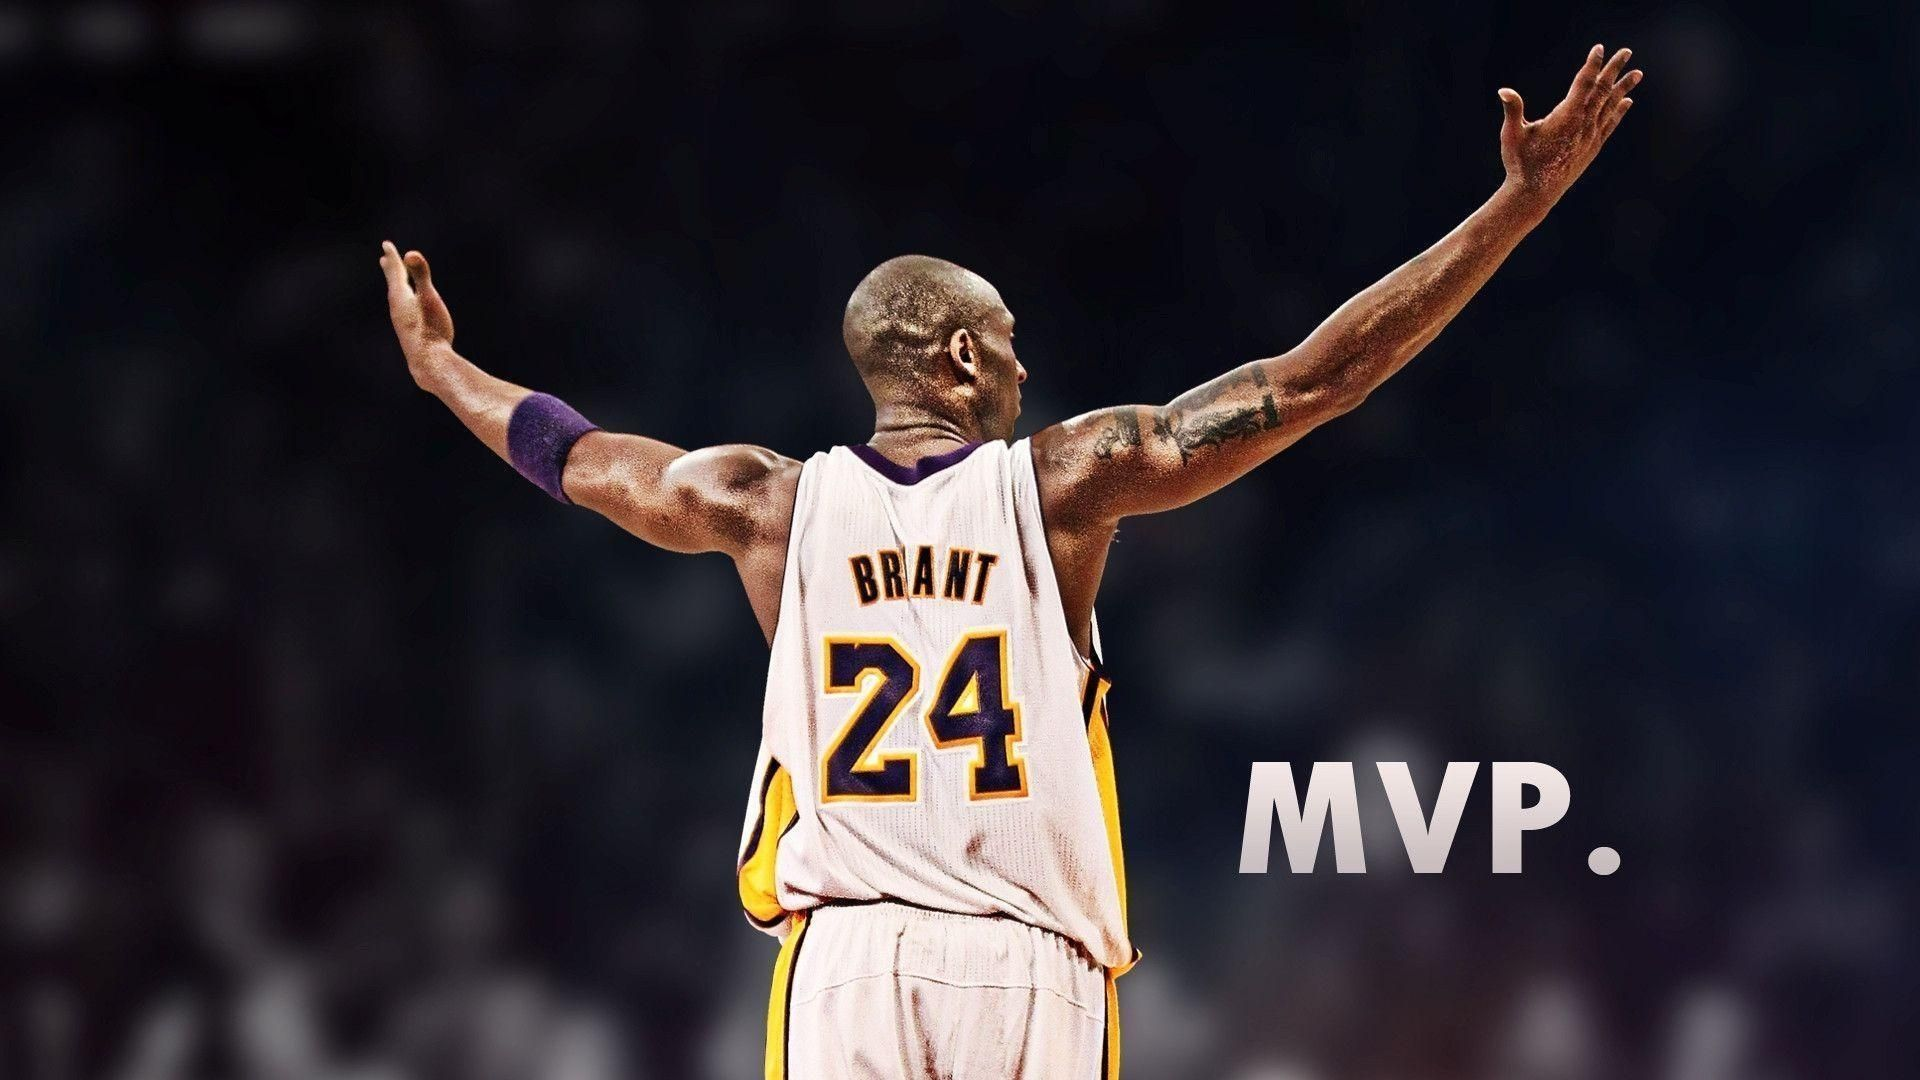 10 Top Kobe Bryant Wallpaper 1920x1080 Full Hd 1920 1080 For Pc